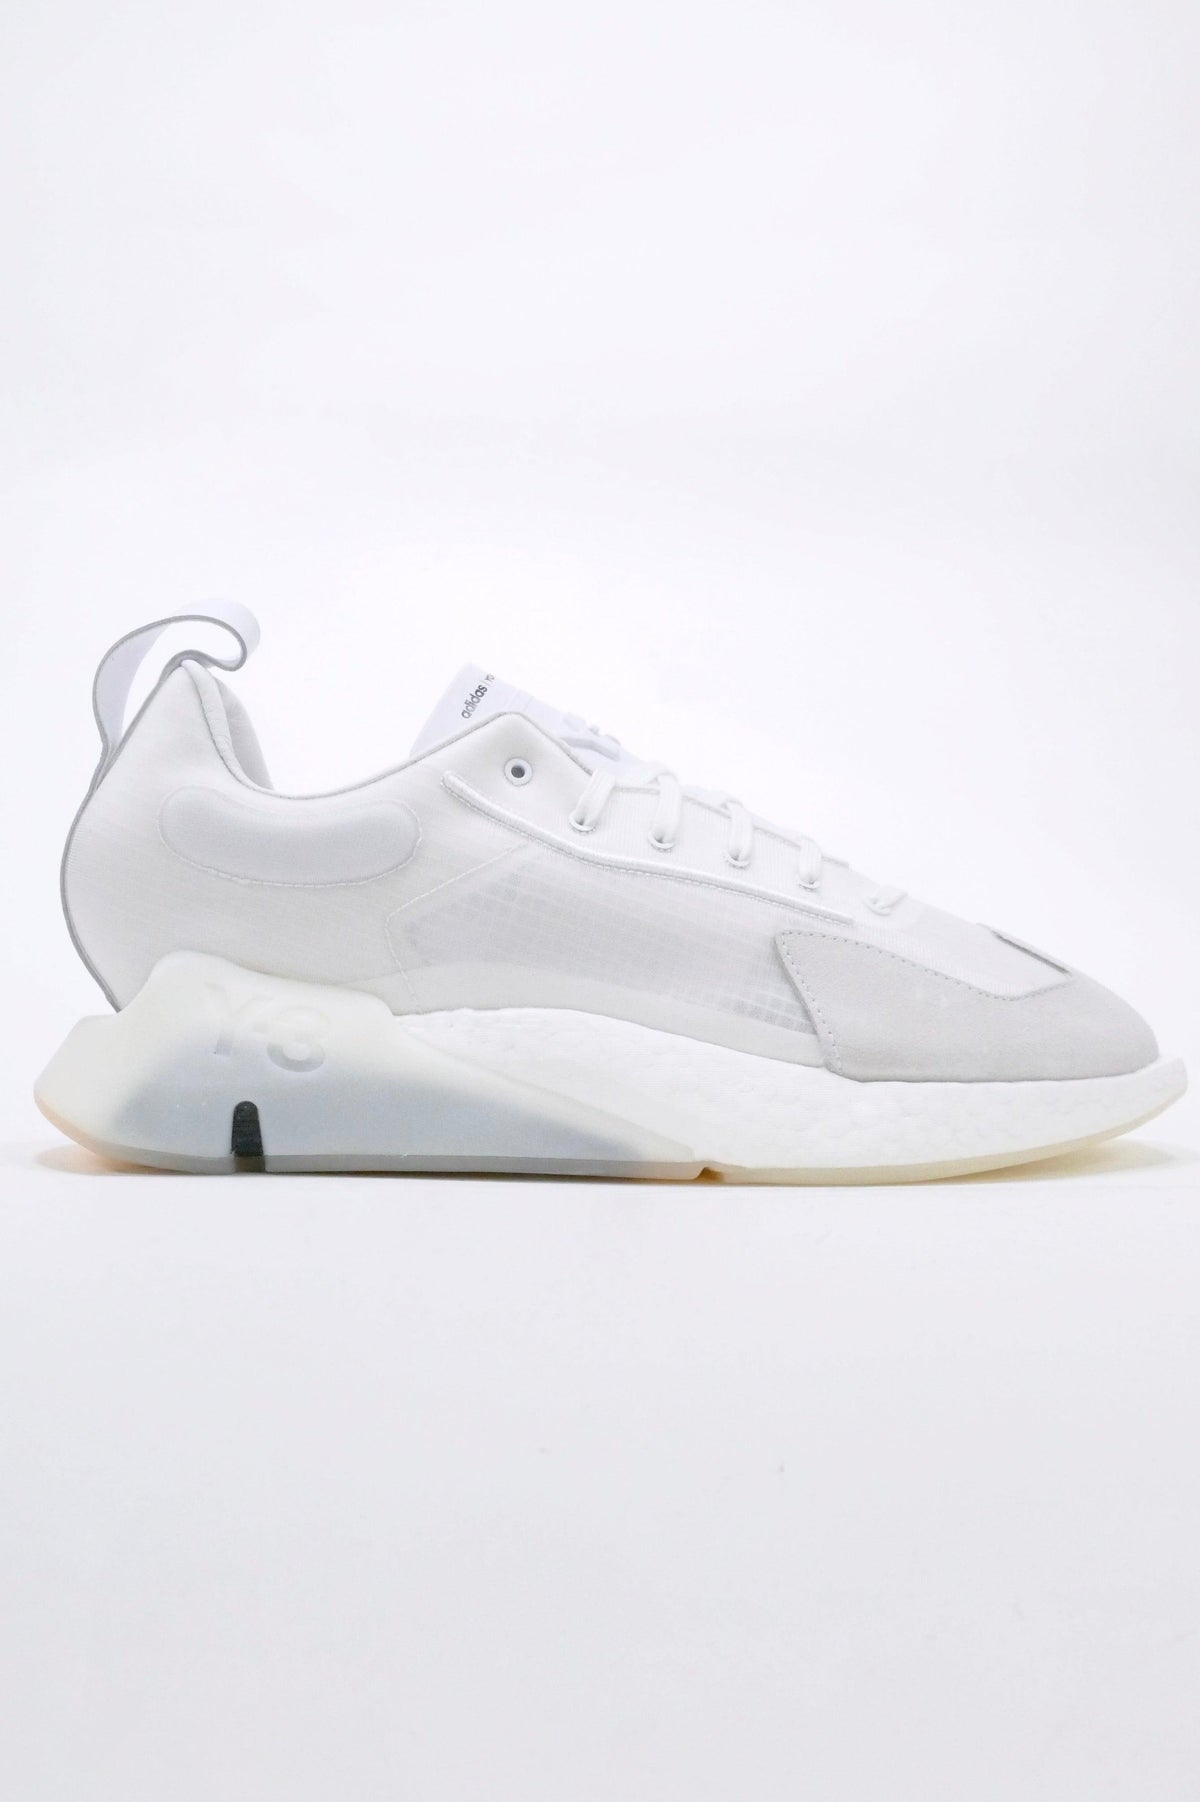 Y-3 Orisan Sneakers White